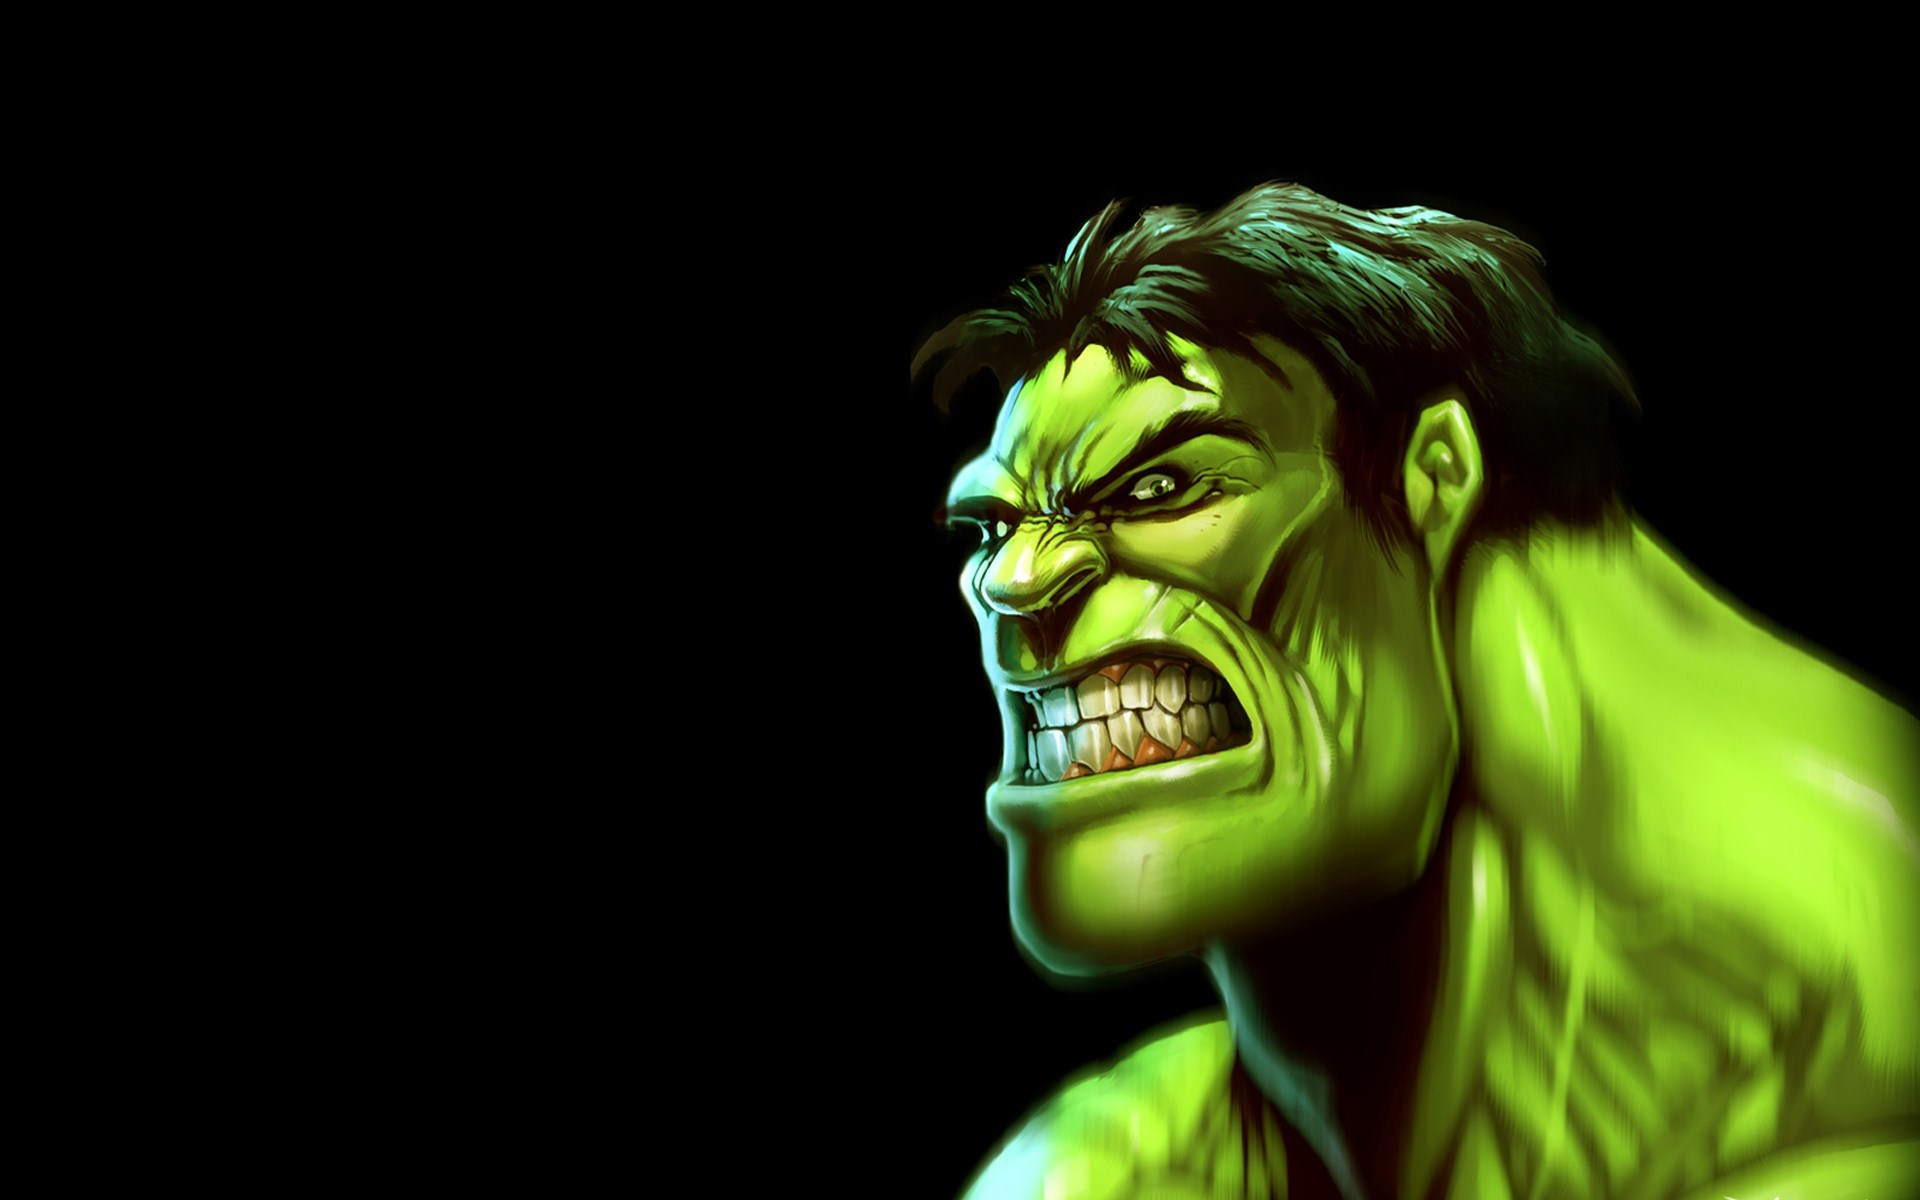 hulk wallpapers, pictures, images